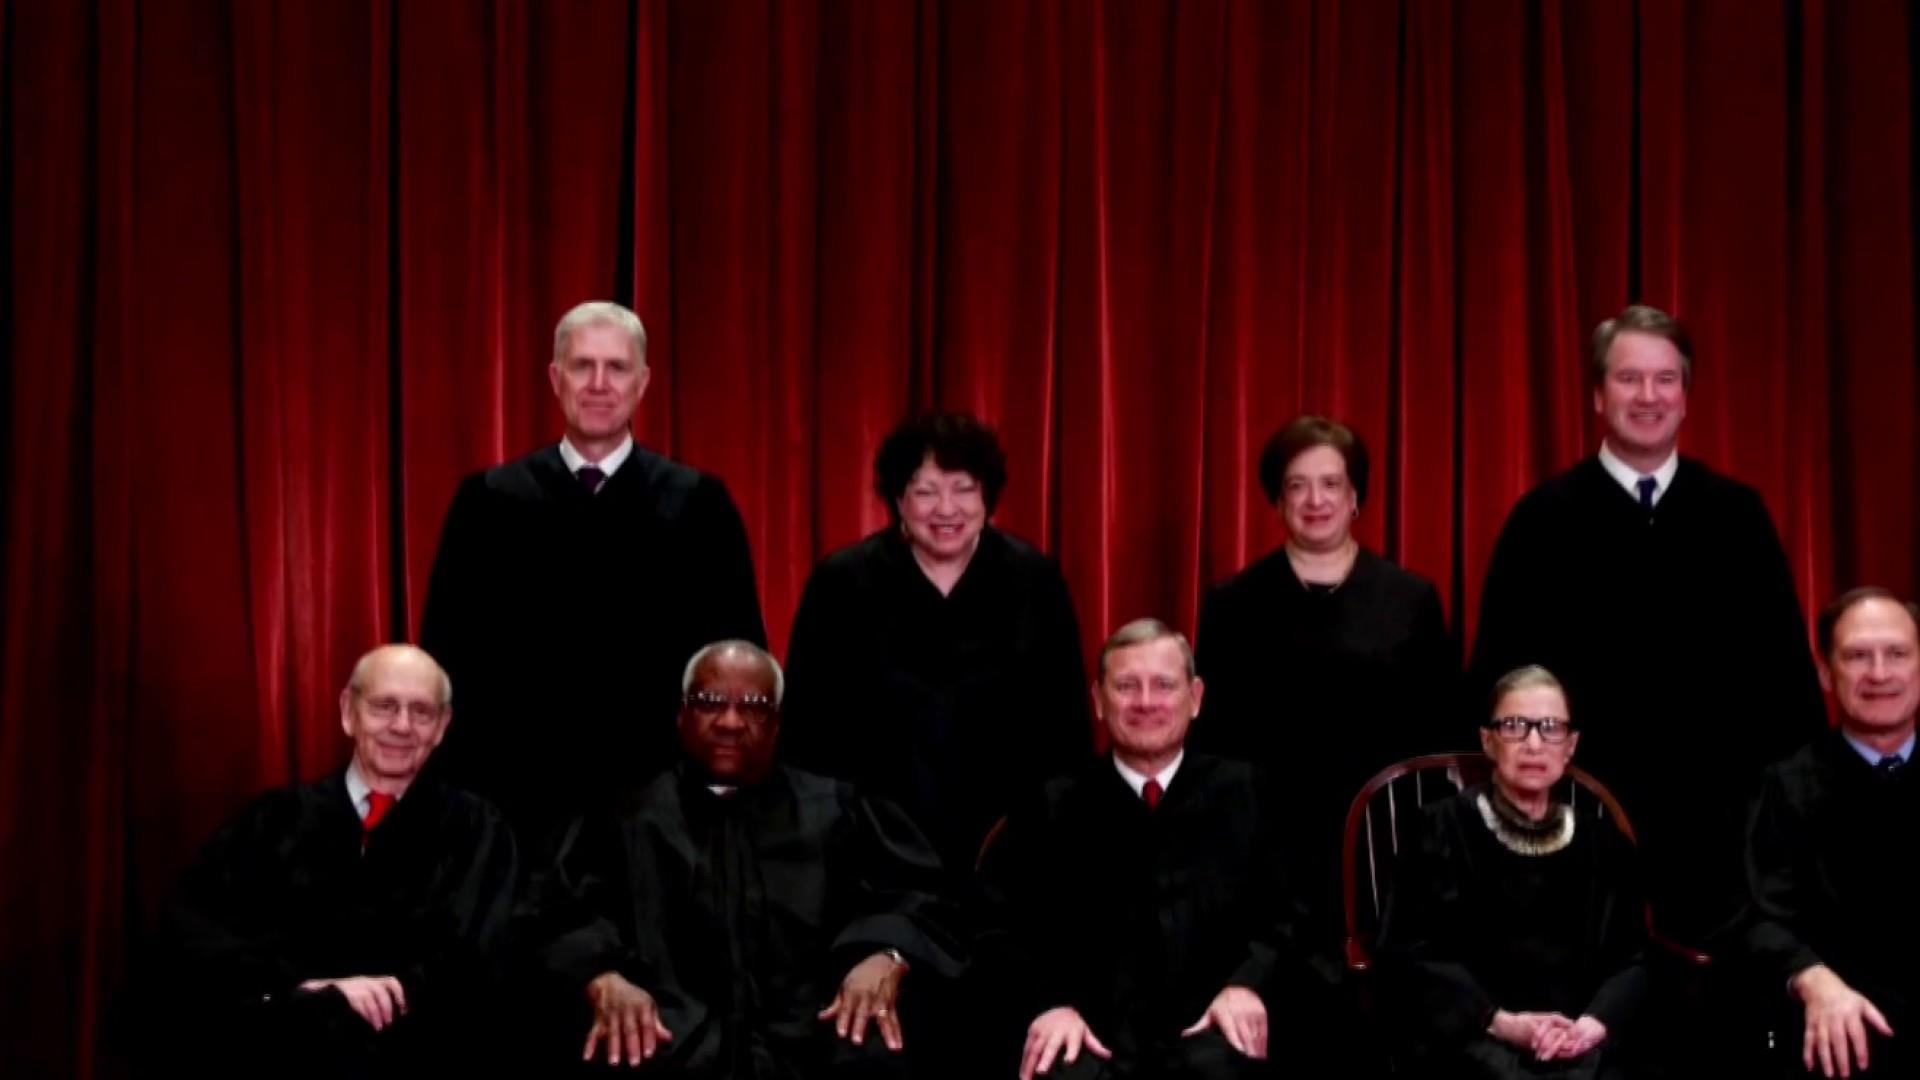 Supreme Court in the spotlight ahead of major upcoming decisions